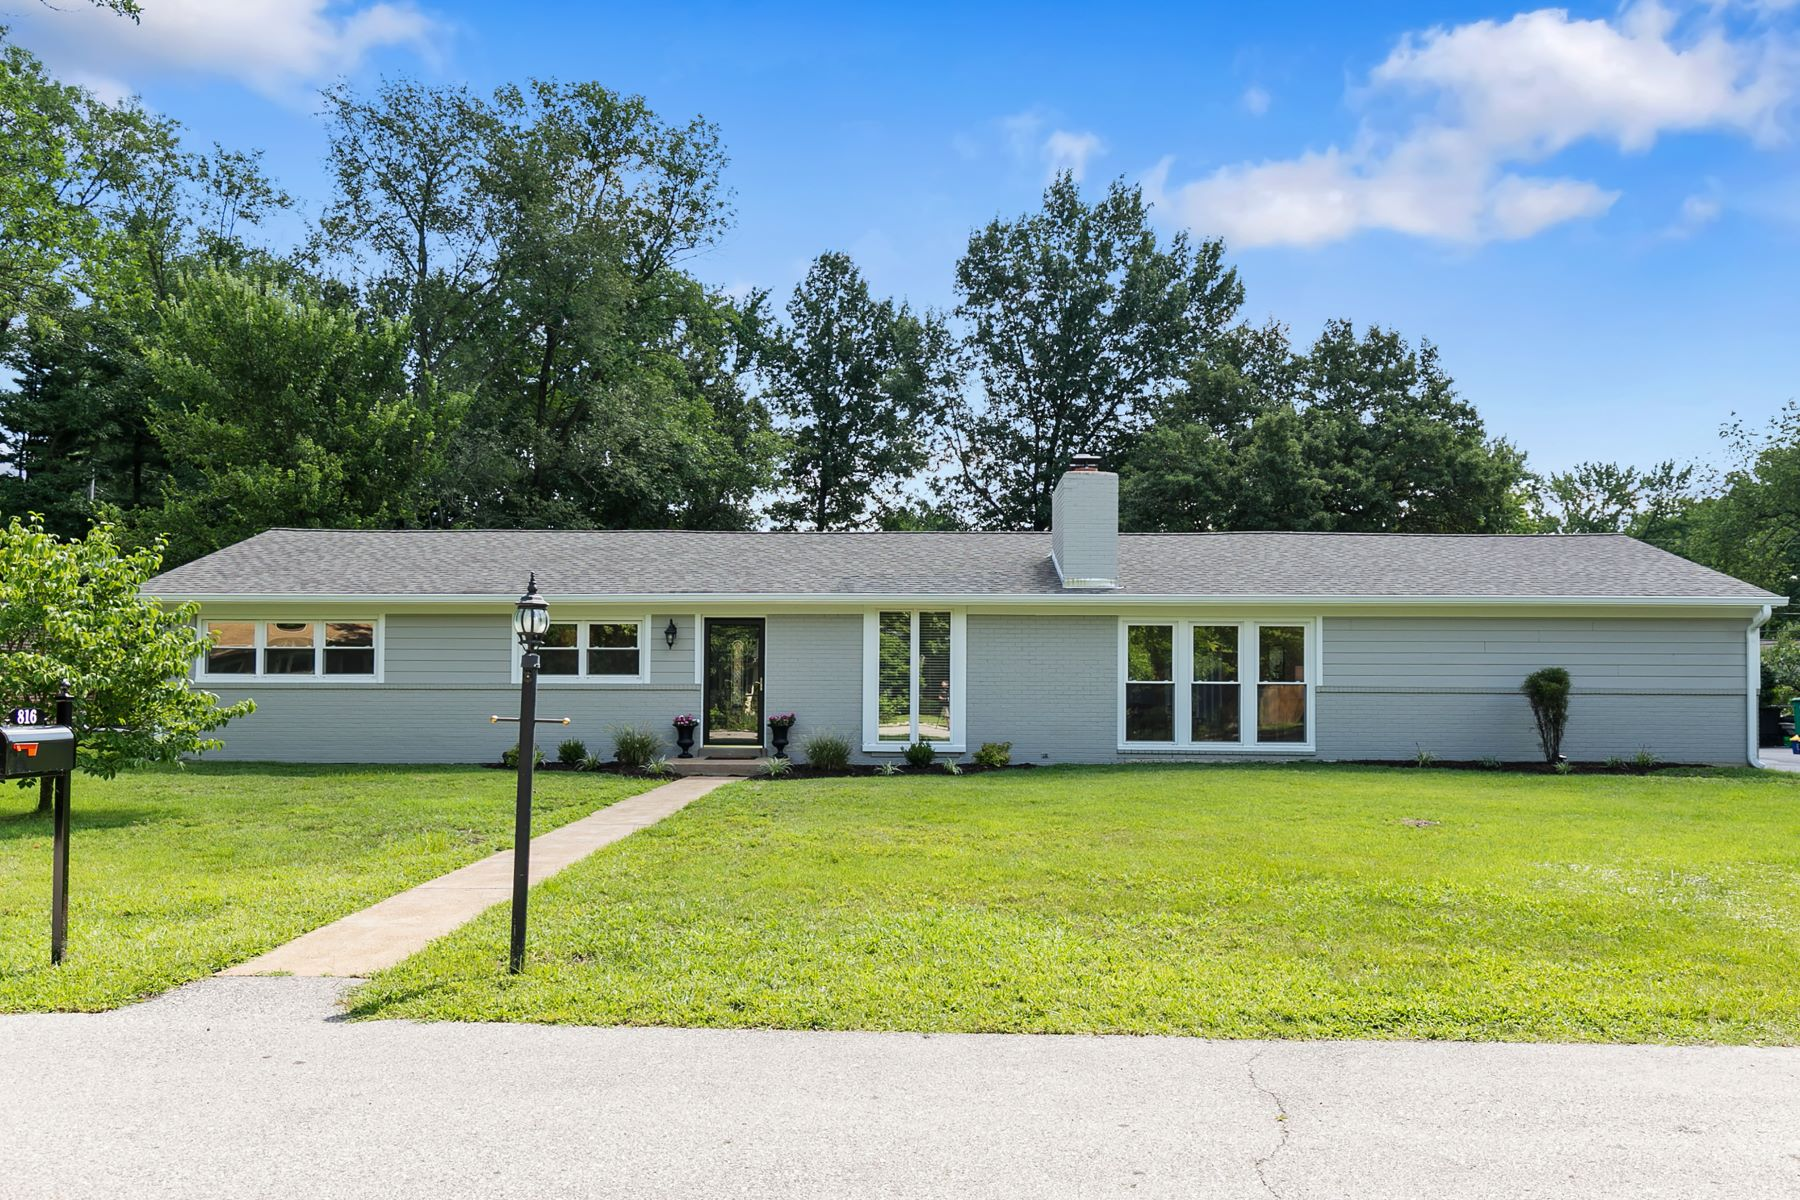 Single Family Homes for Sale at Living is easy in this fully renovated ranch situated on just under a 1/2 acre! 816 Wenneker Drive Ladue, Missouri 63124 United States